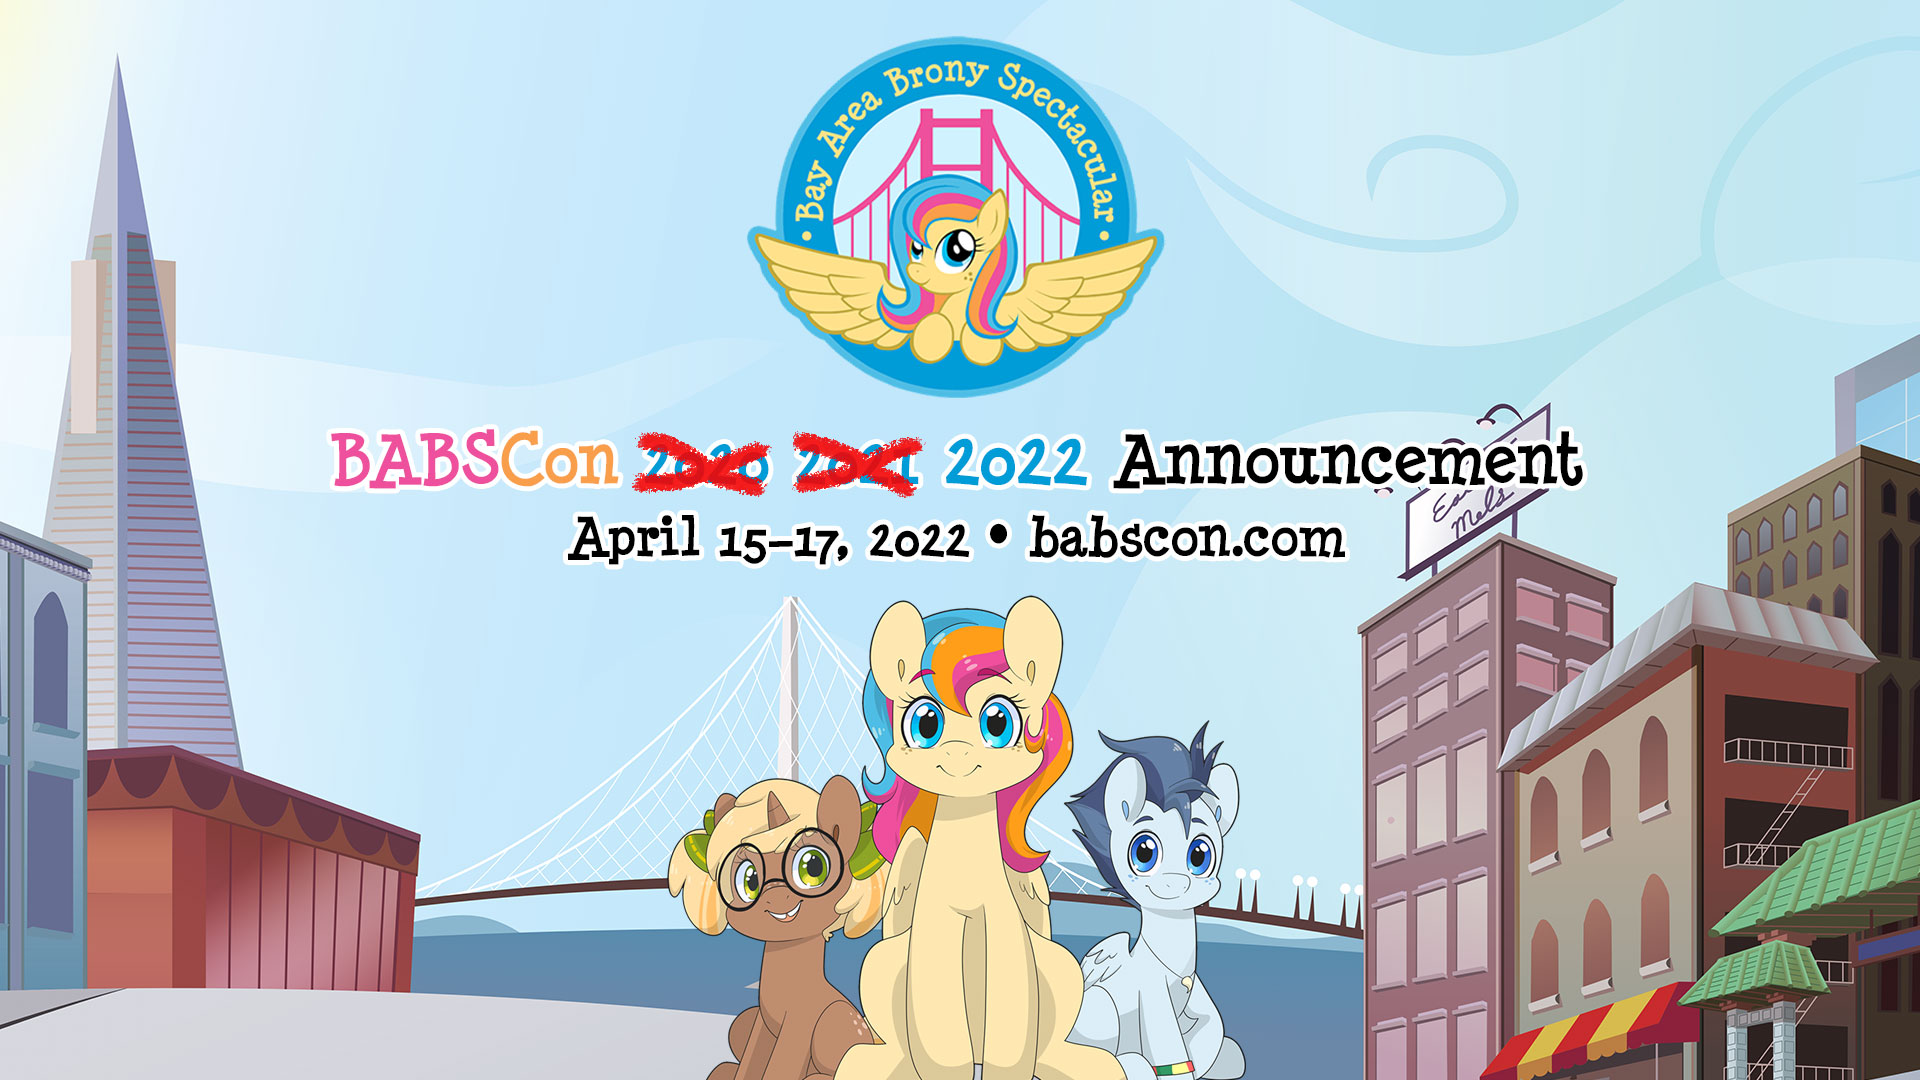 BABSCon Delayed Until April 15–17, 2022 Due To COVID-19 Pandemic